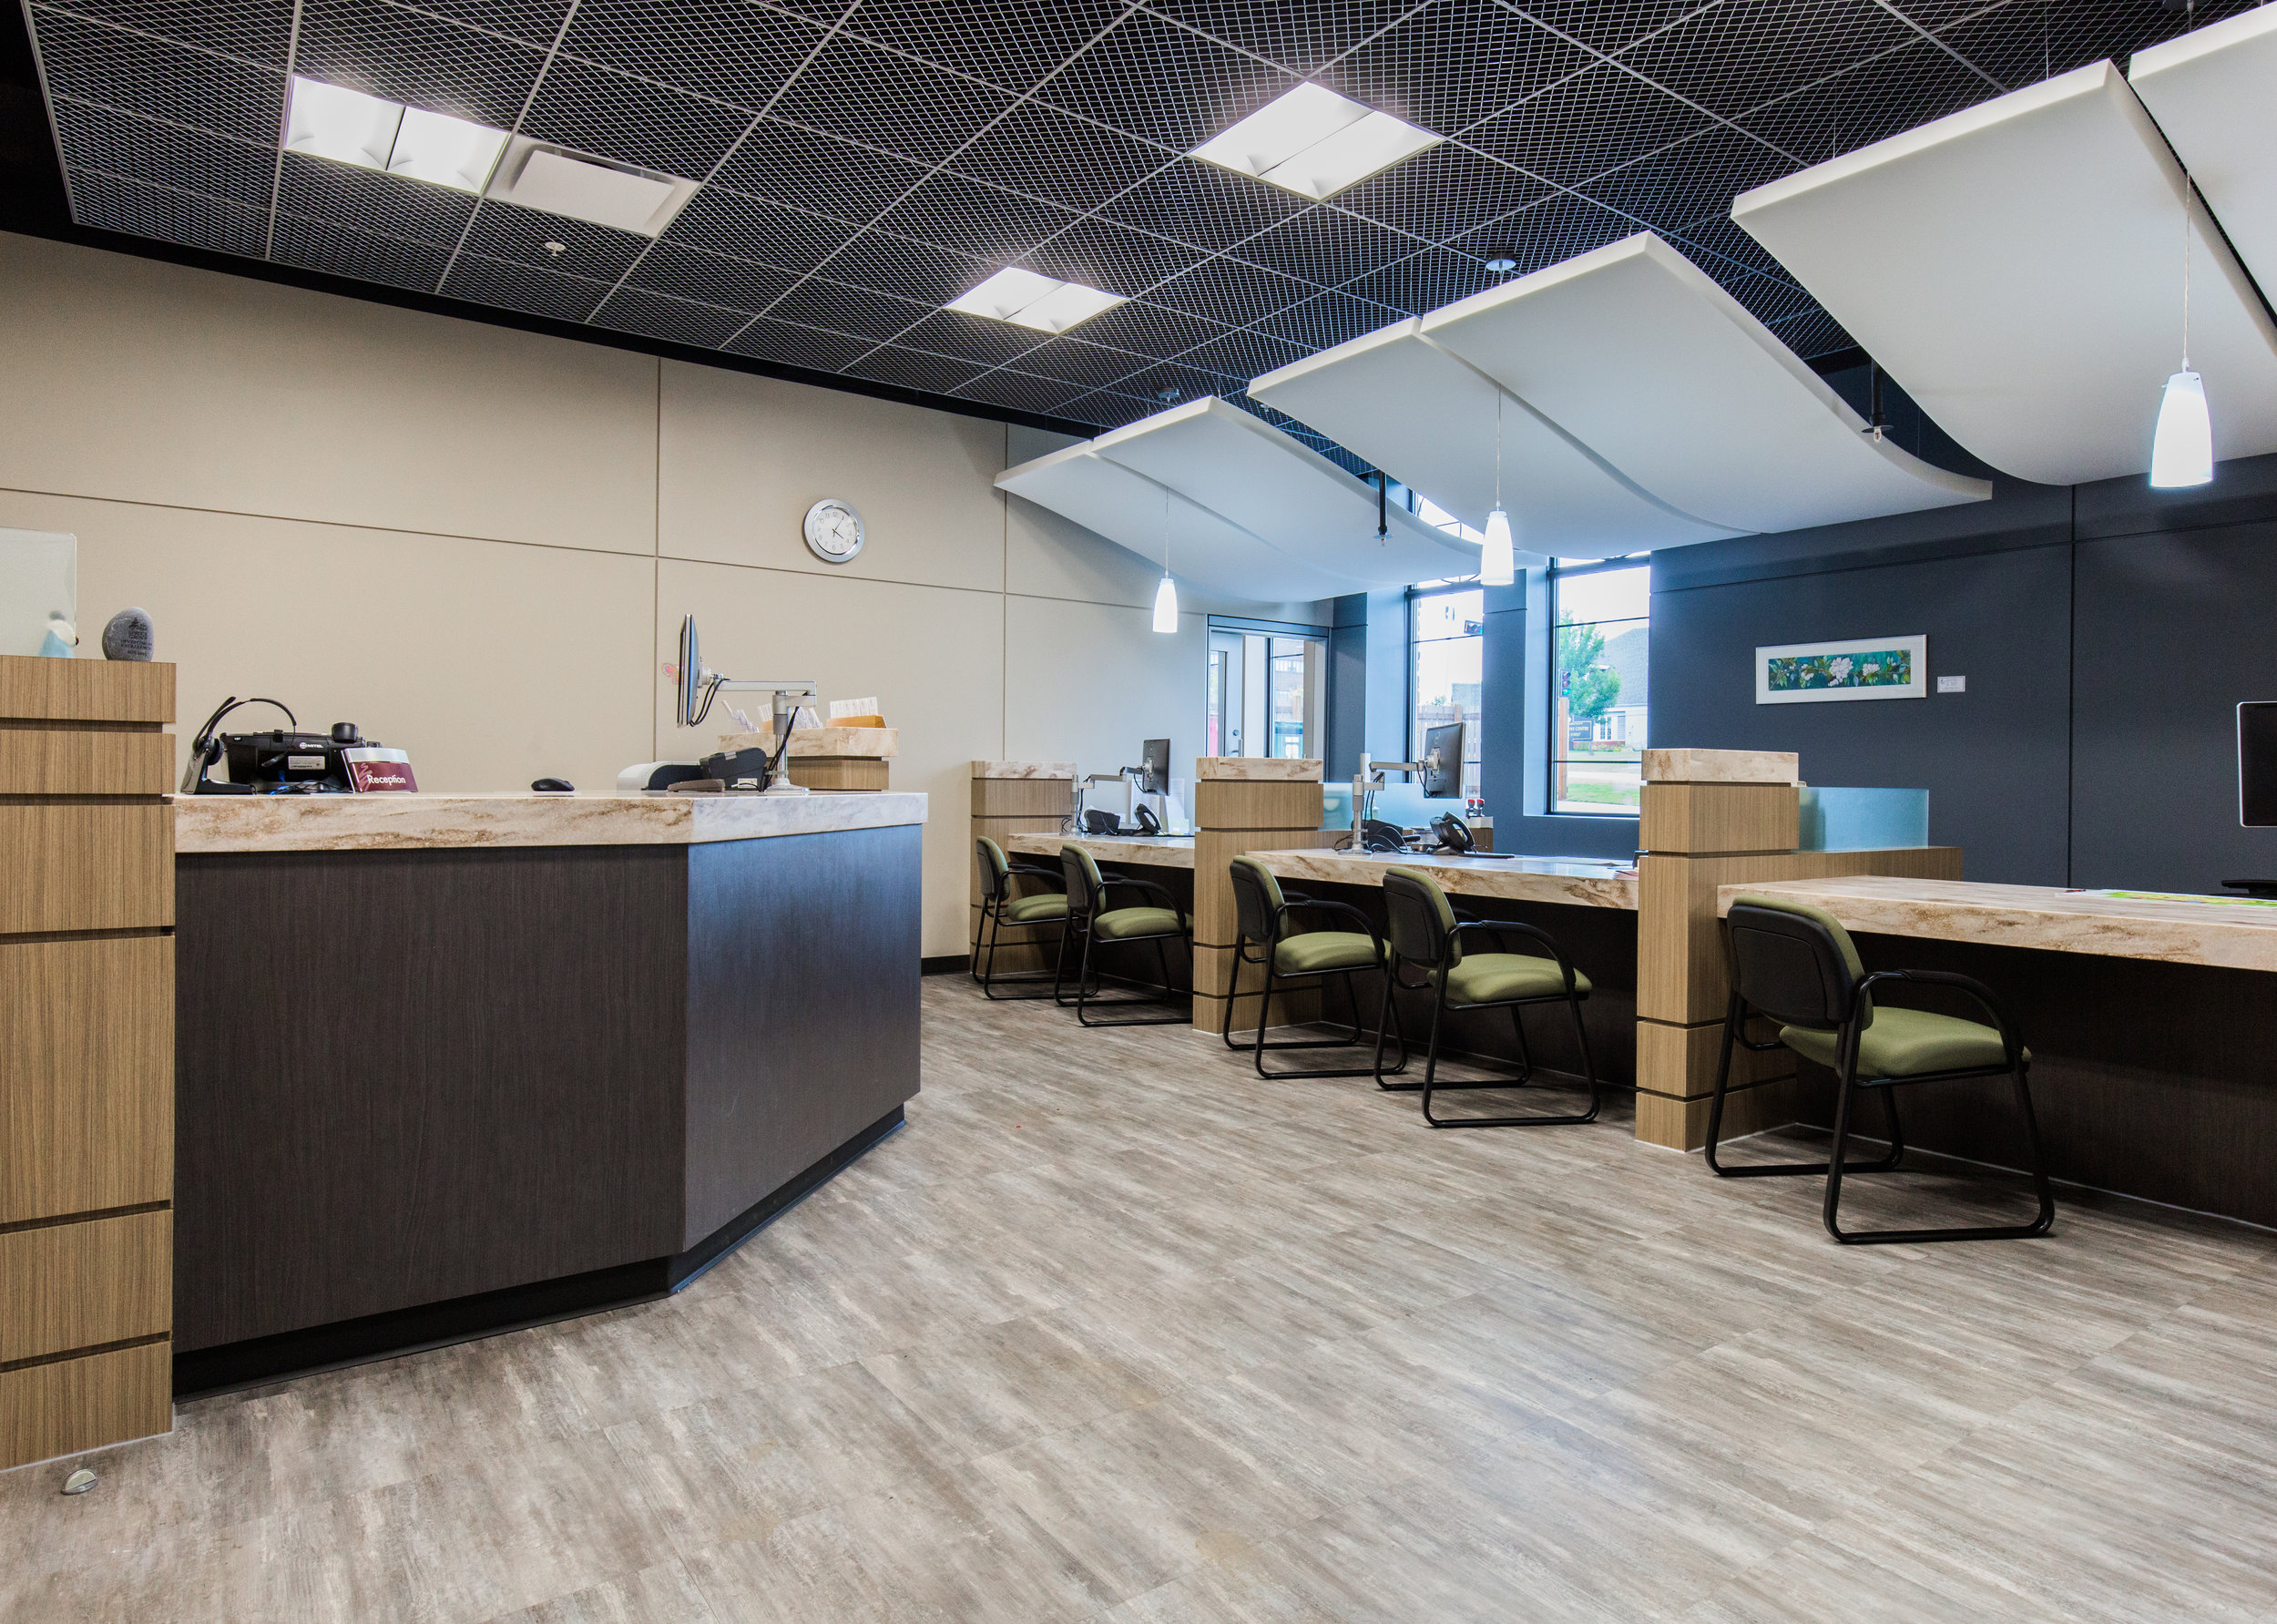 Job Name:  King Street   Contractor:  Keller Construction   Description:  Interior tenant improvement for the city of Spruce Grove permits & licensing office. This included connections to work stations, as well as a high end N-Light lighting controls system.